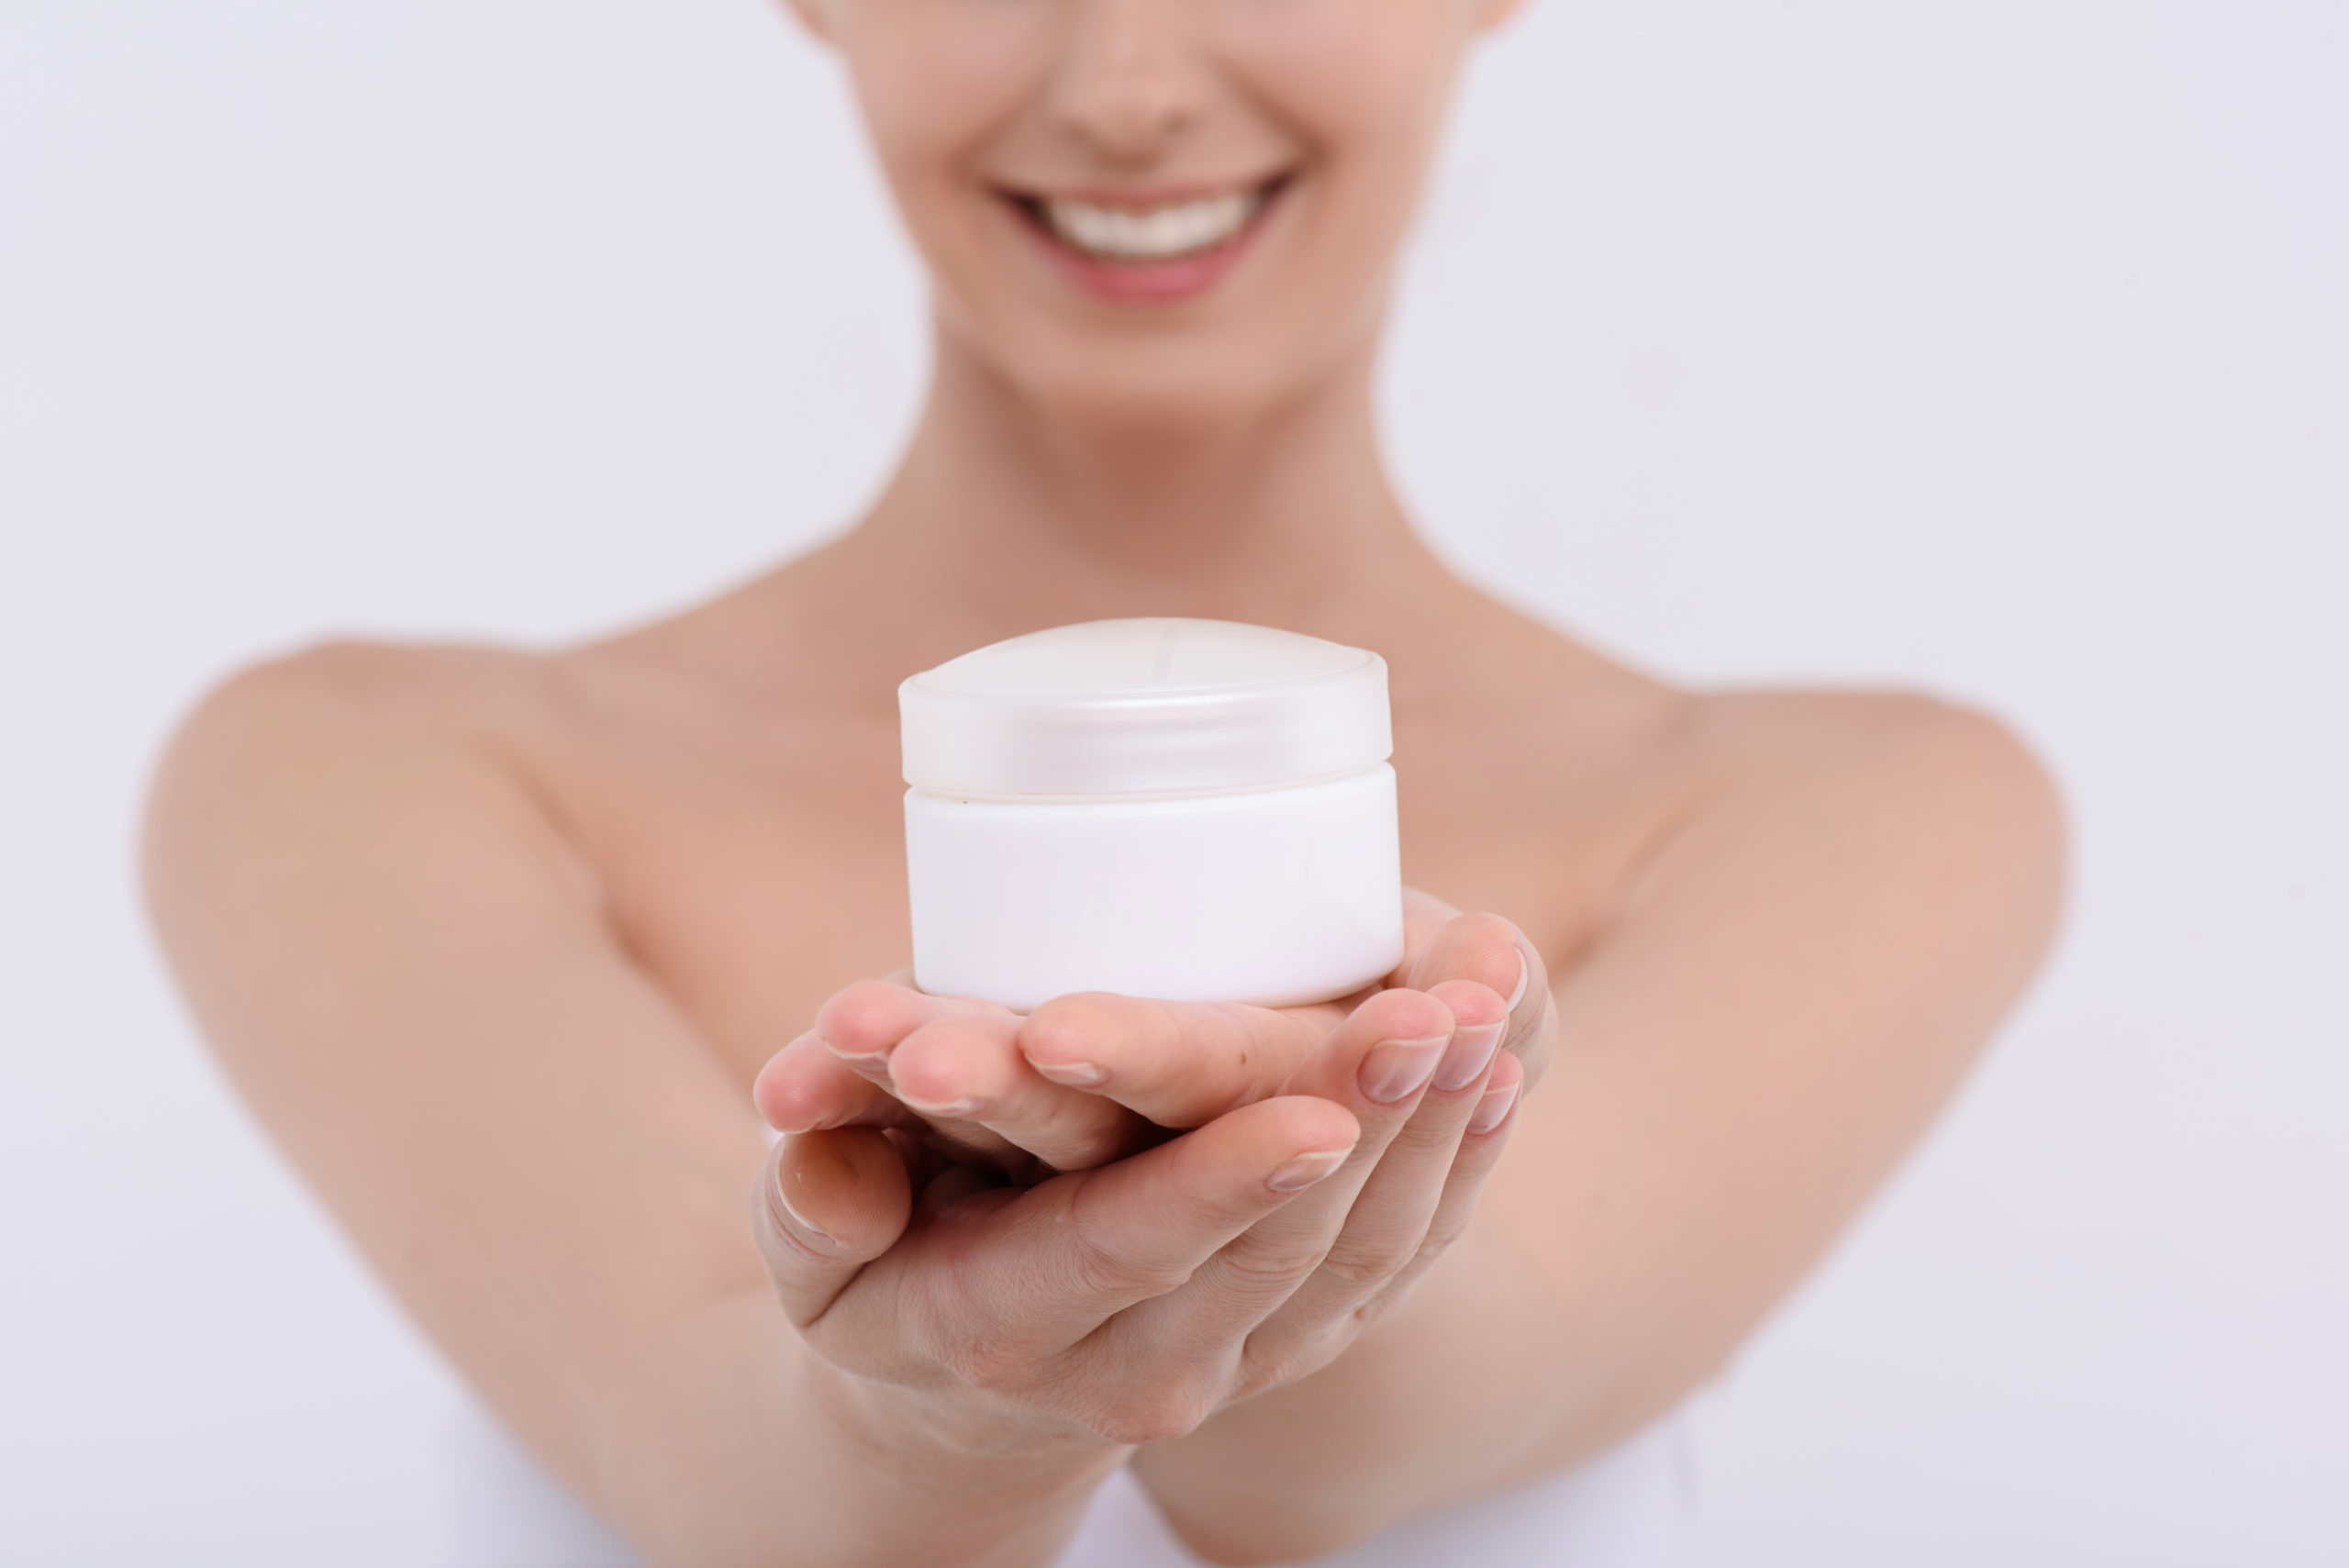 This cream will make your face perfect. Joyful young woman is showing cream can to camera. She is standing and smiling. Isolated